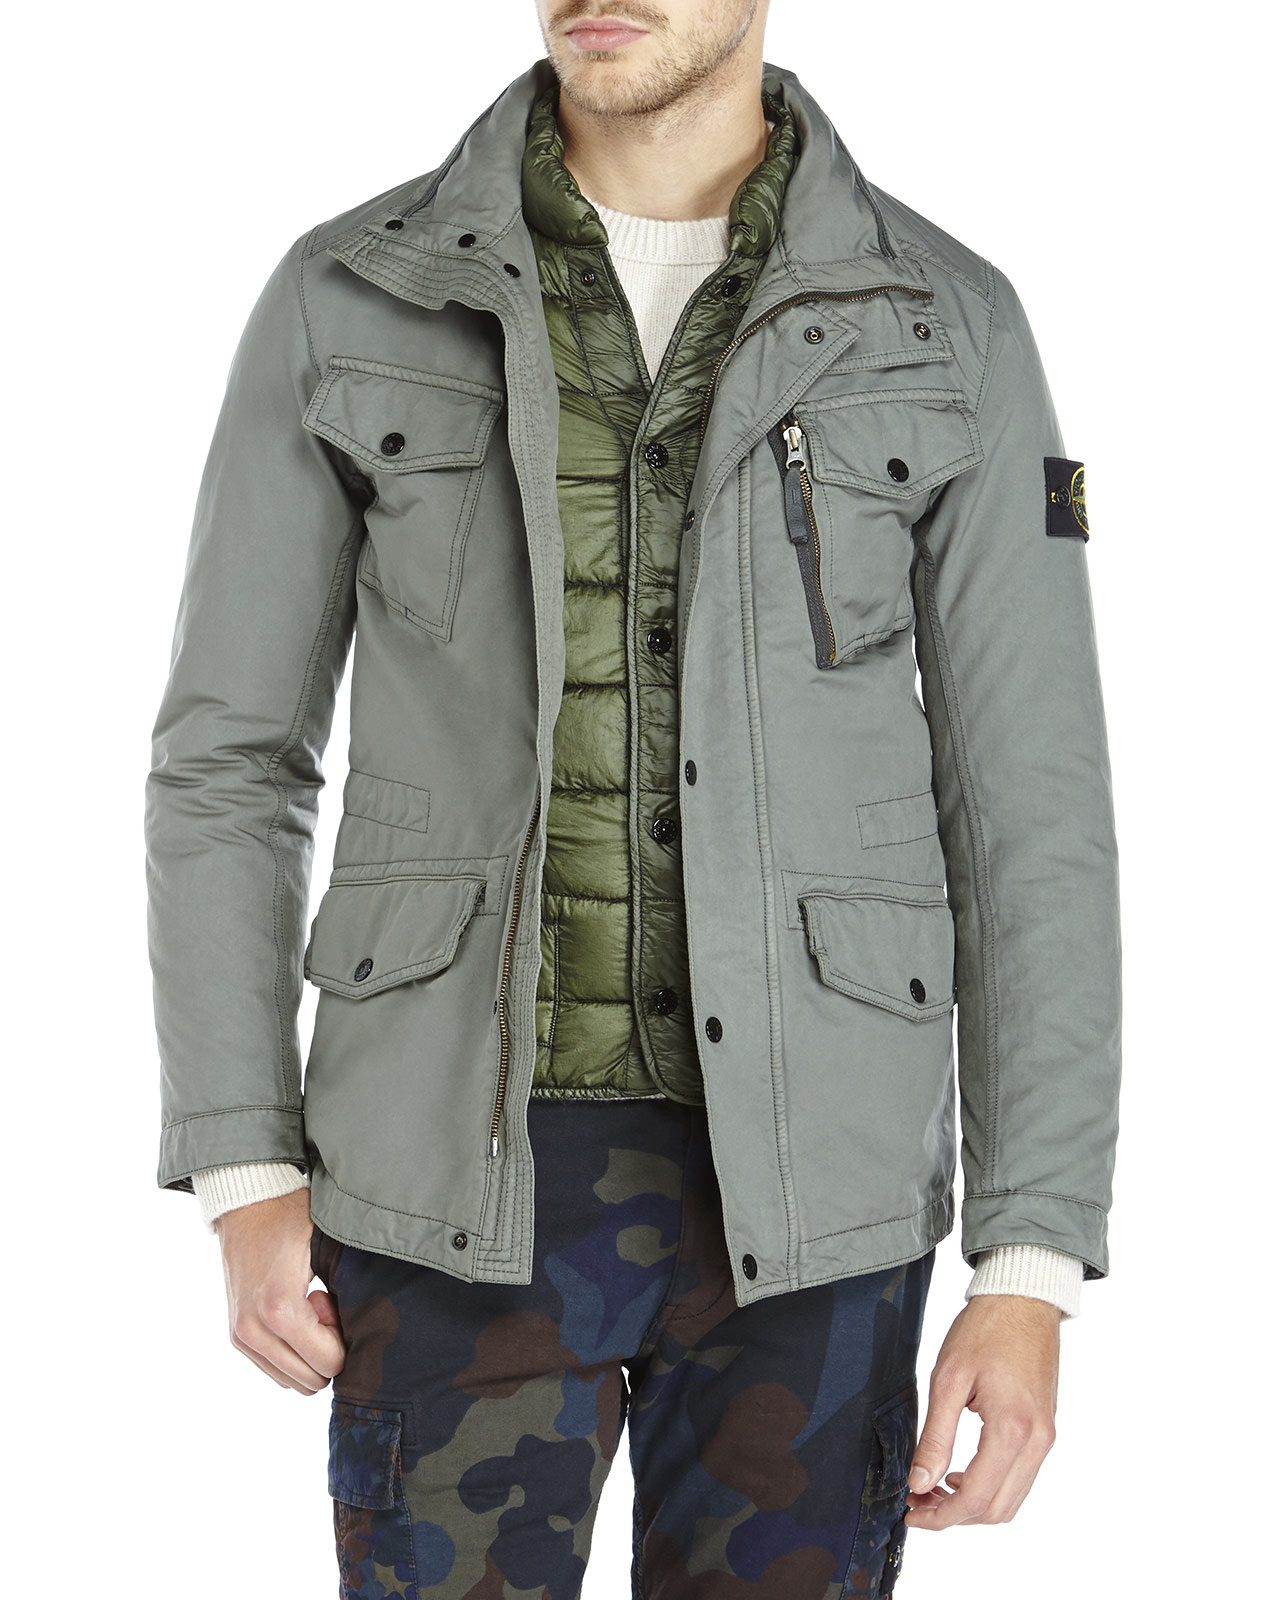 lyst stone island david tc down jacket in green for men. Black Bedroom Furniture Sets. Home Design Ideas